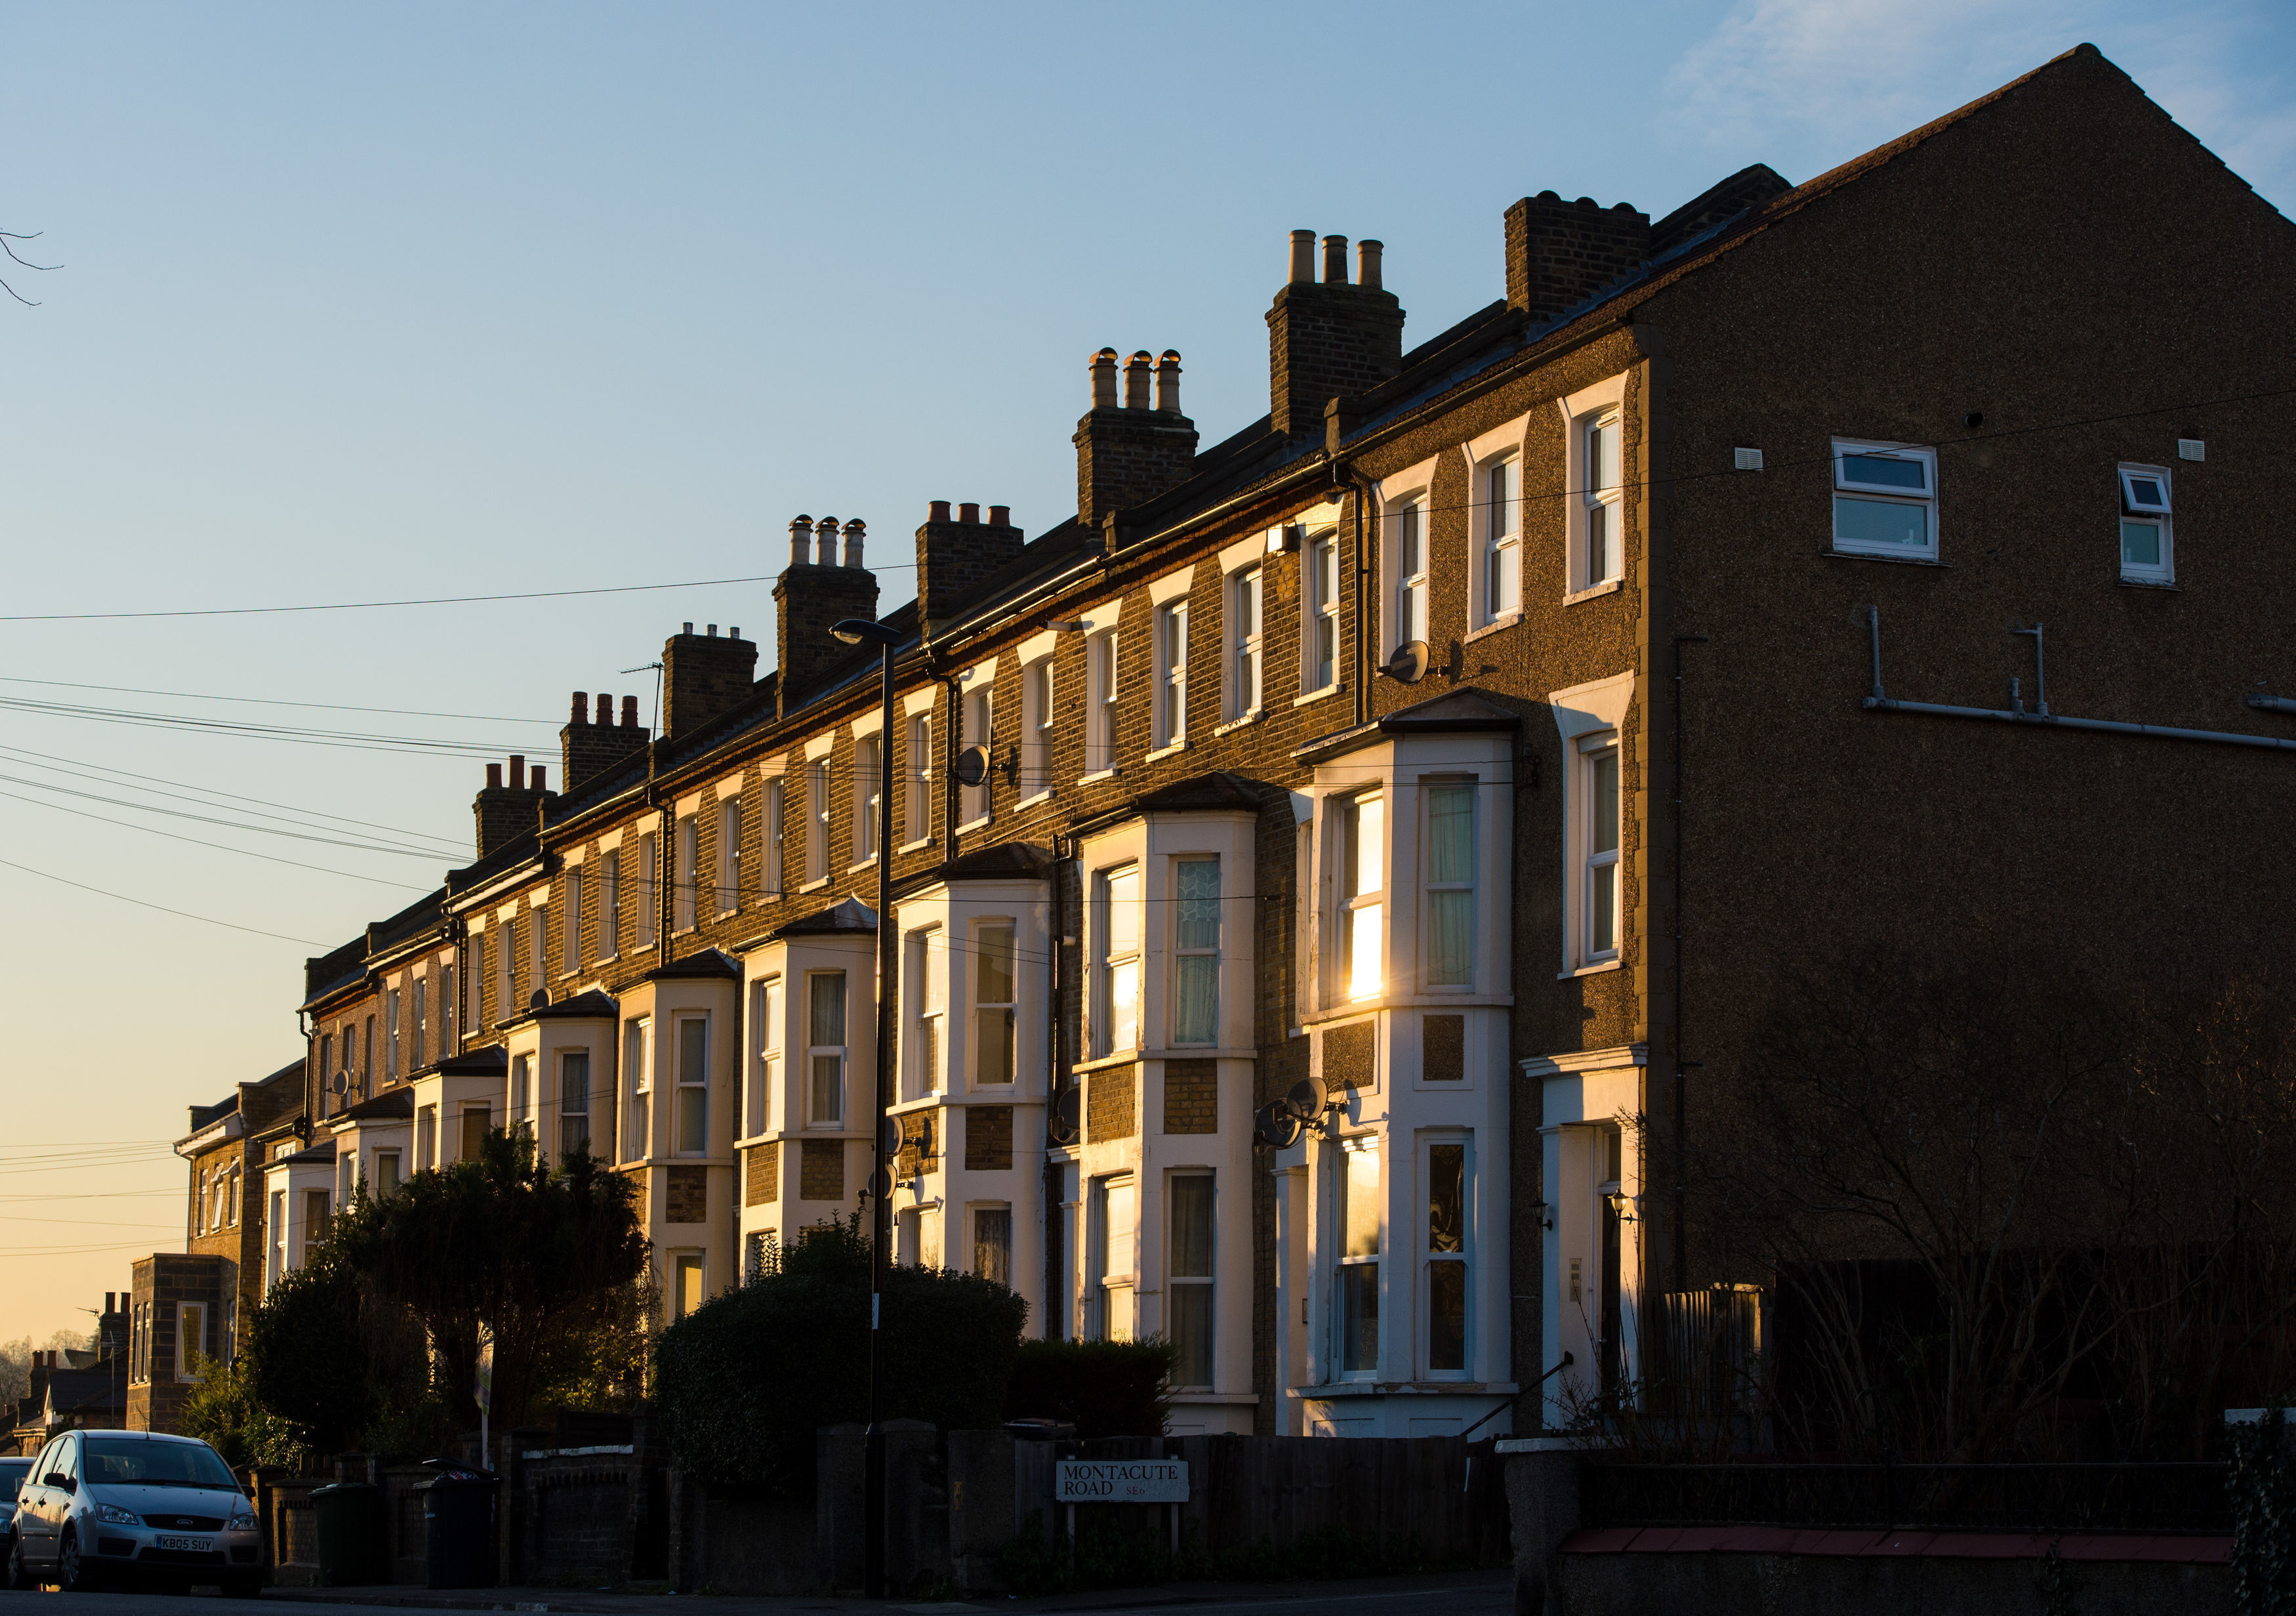 The FCA has proposed a ban on house repossessions is extended until April 1